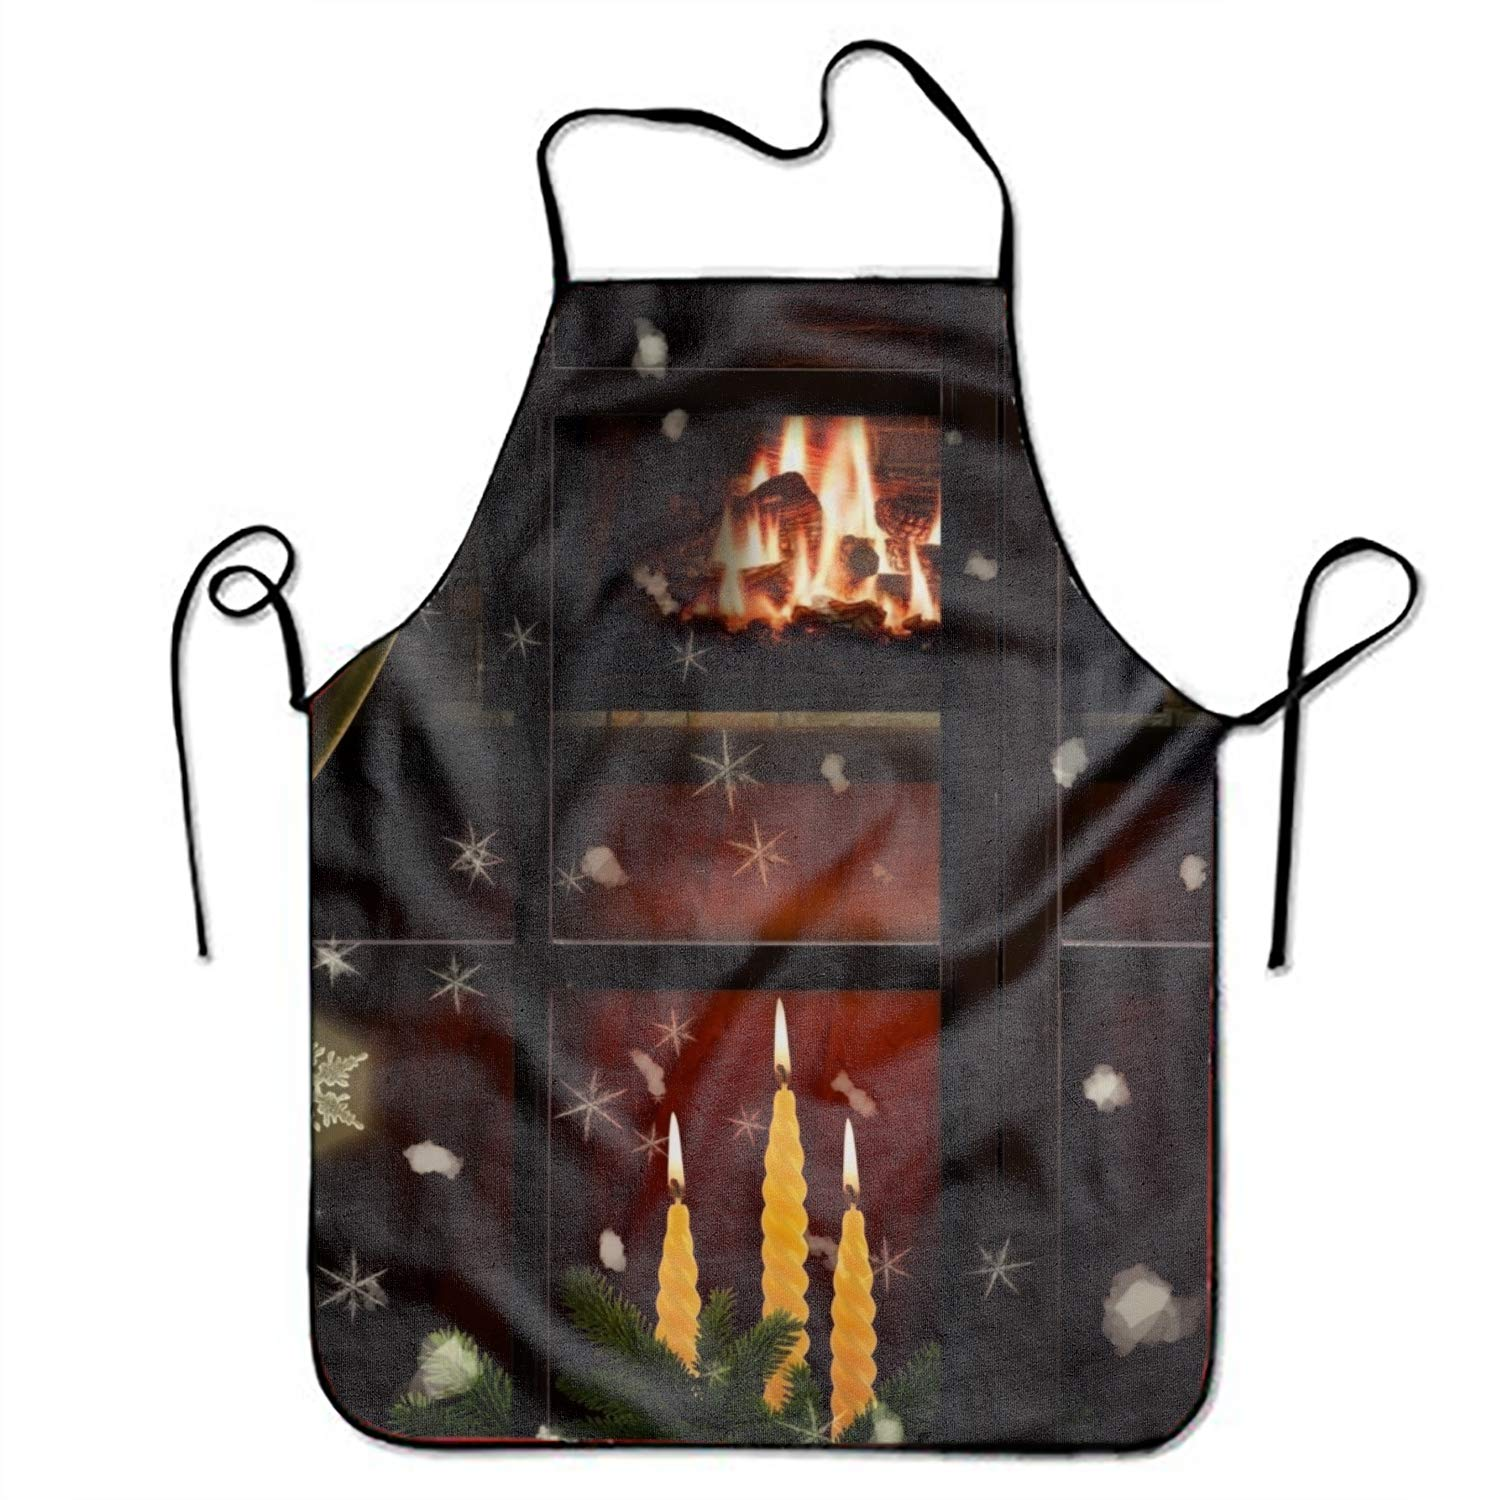 MXYG Unisex Custom Aprons Holiday Christmas Tree Candle Window Snowflake Fireplace Waterproof Aprons with Adjustable Kitchen Cooking and Bib BBQ Apron